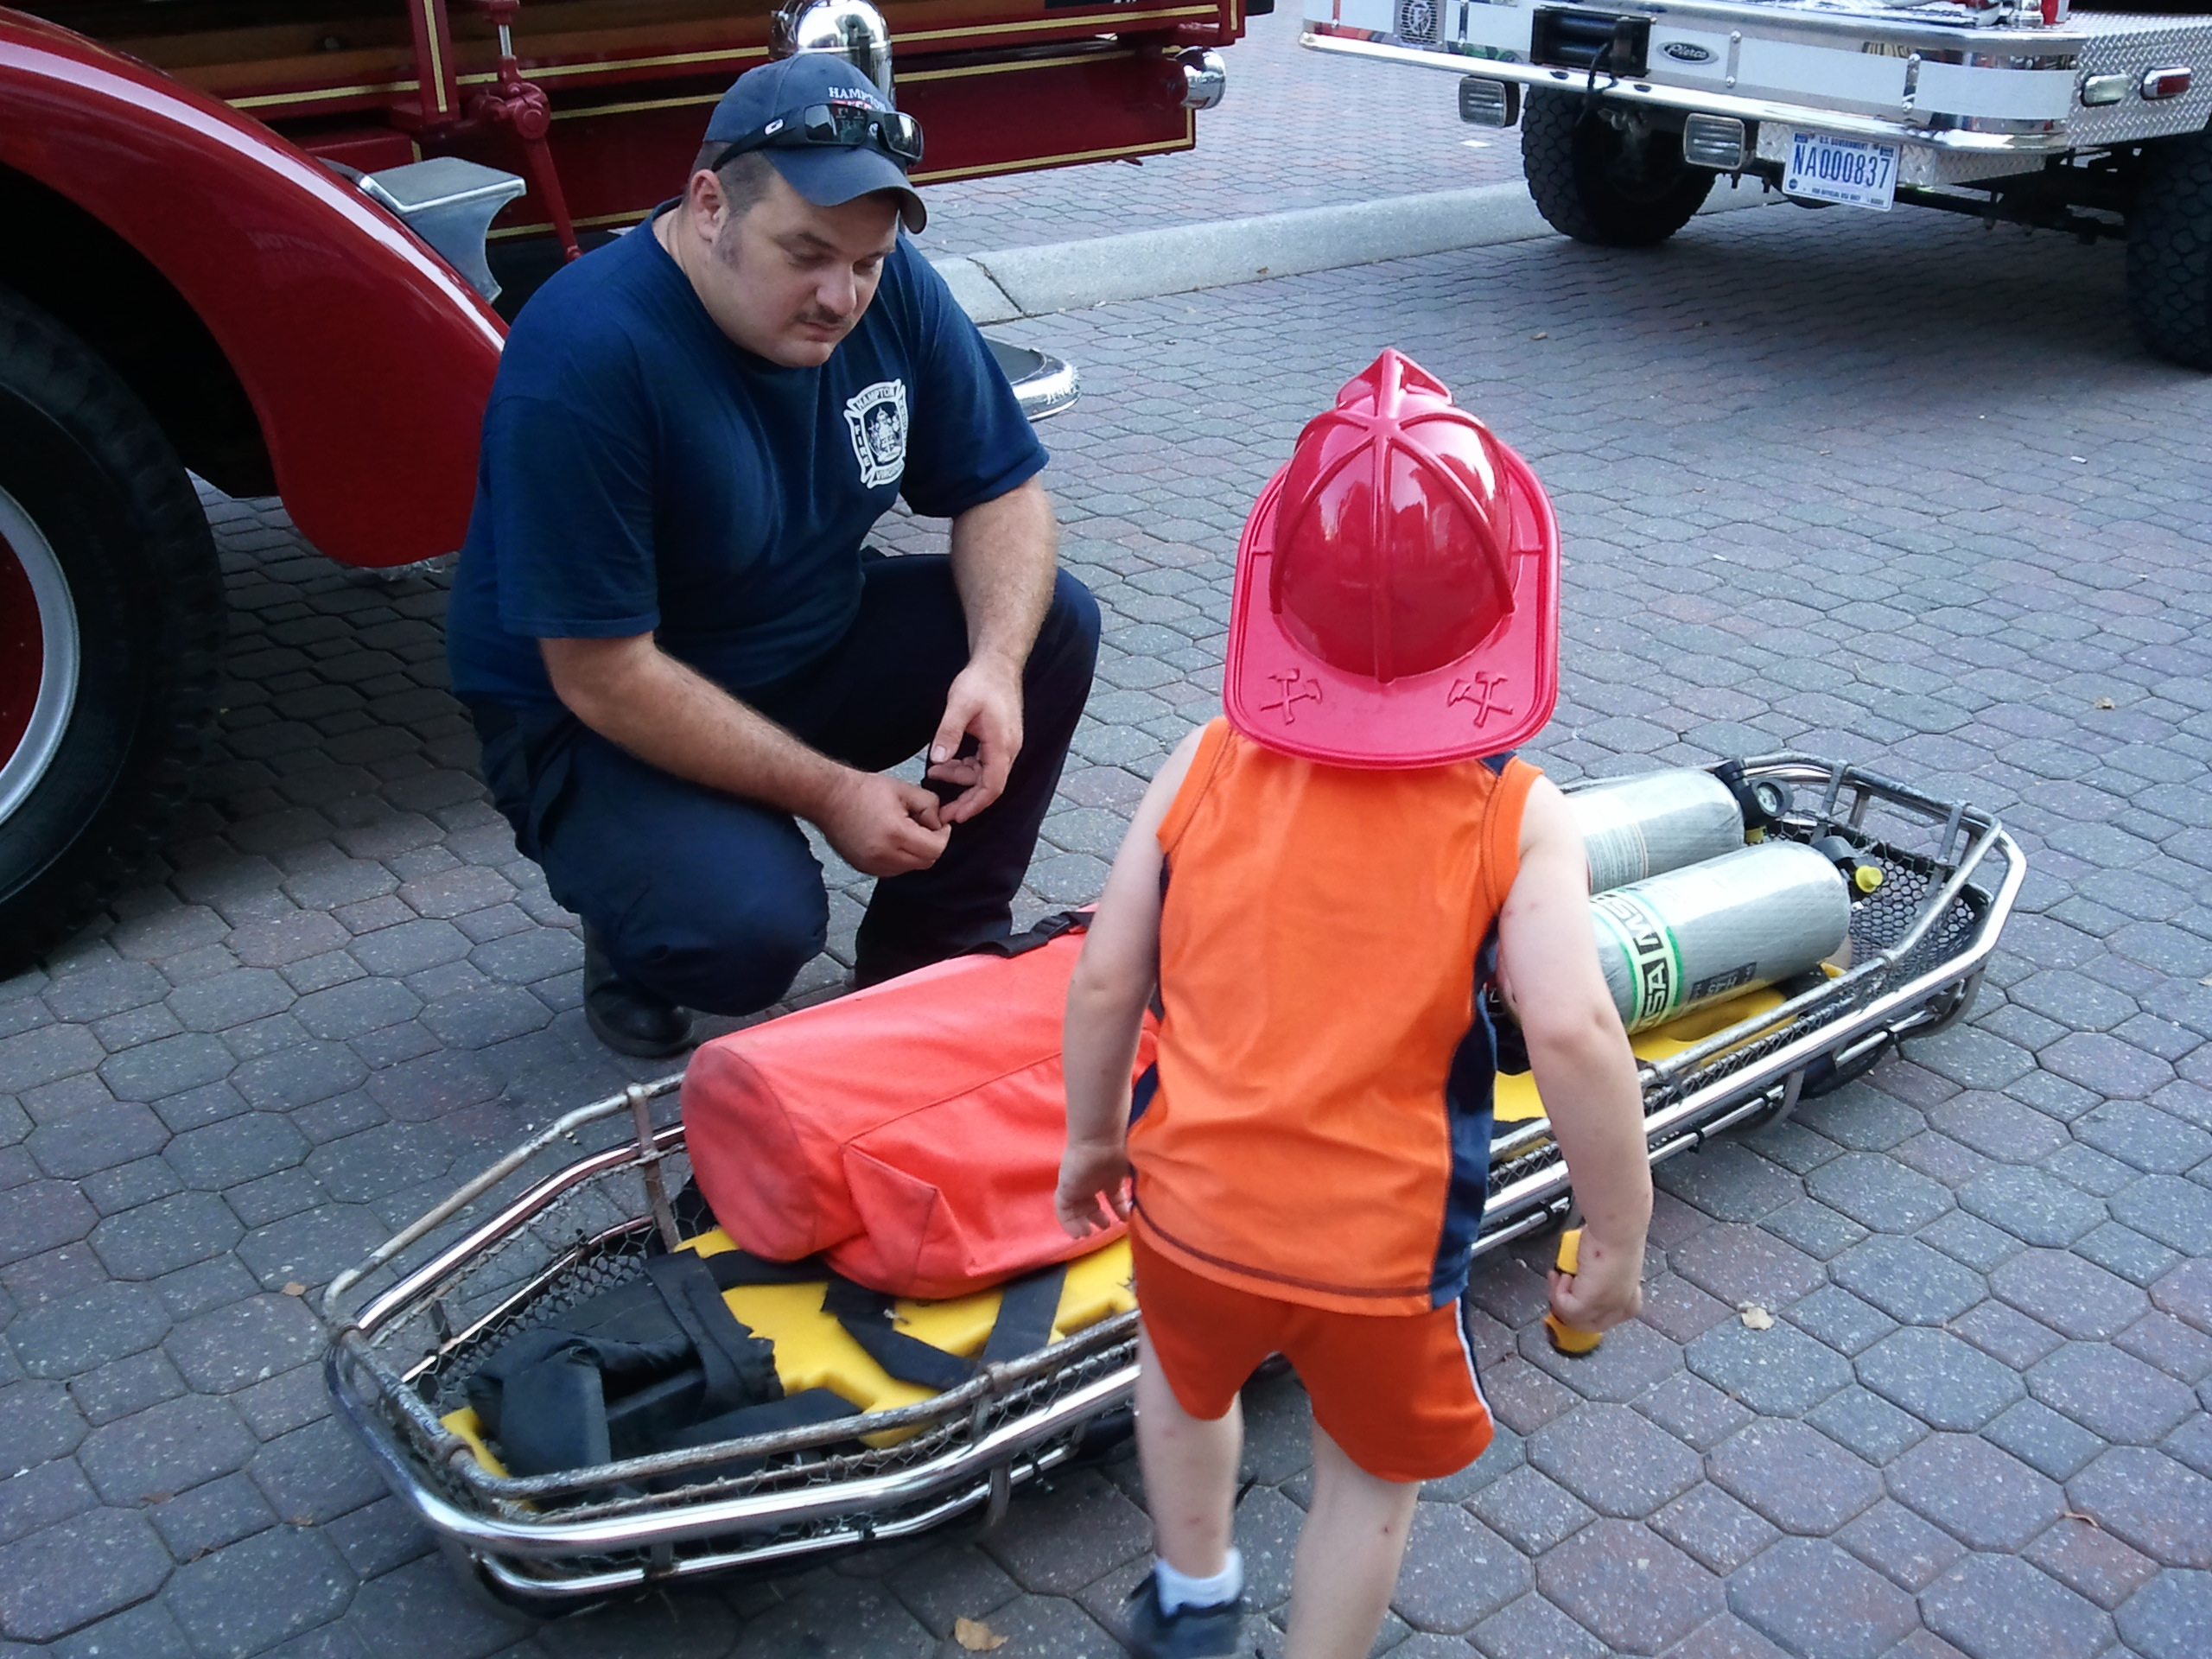 Firefighter displays equipment to child